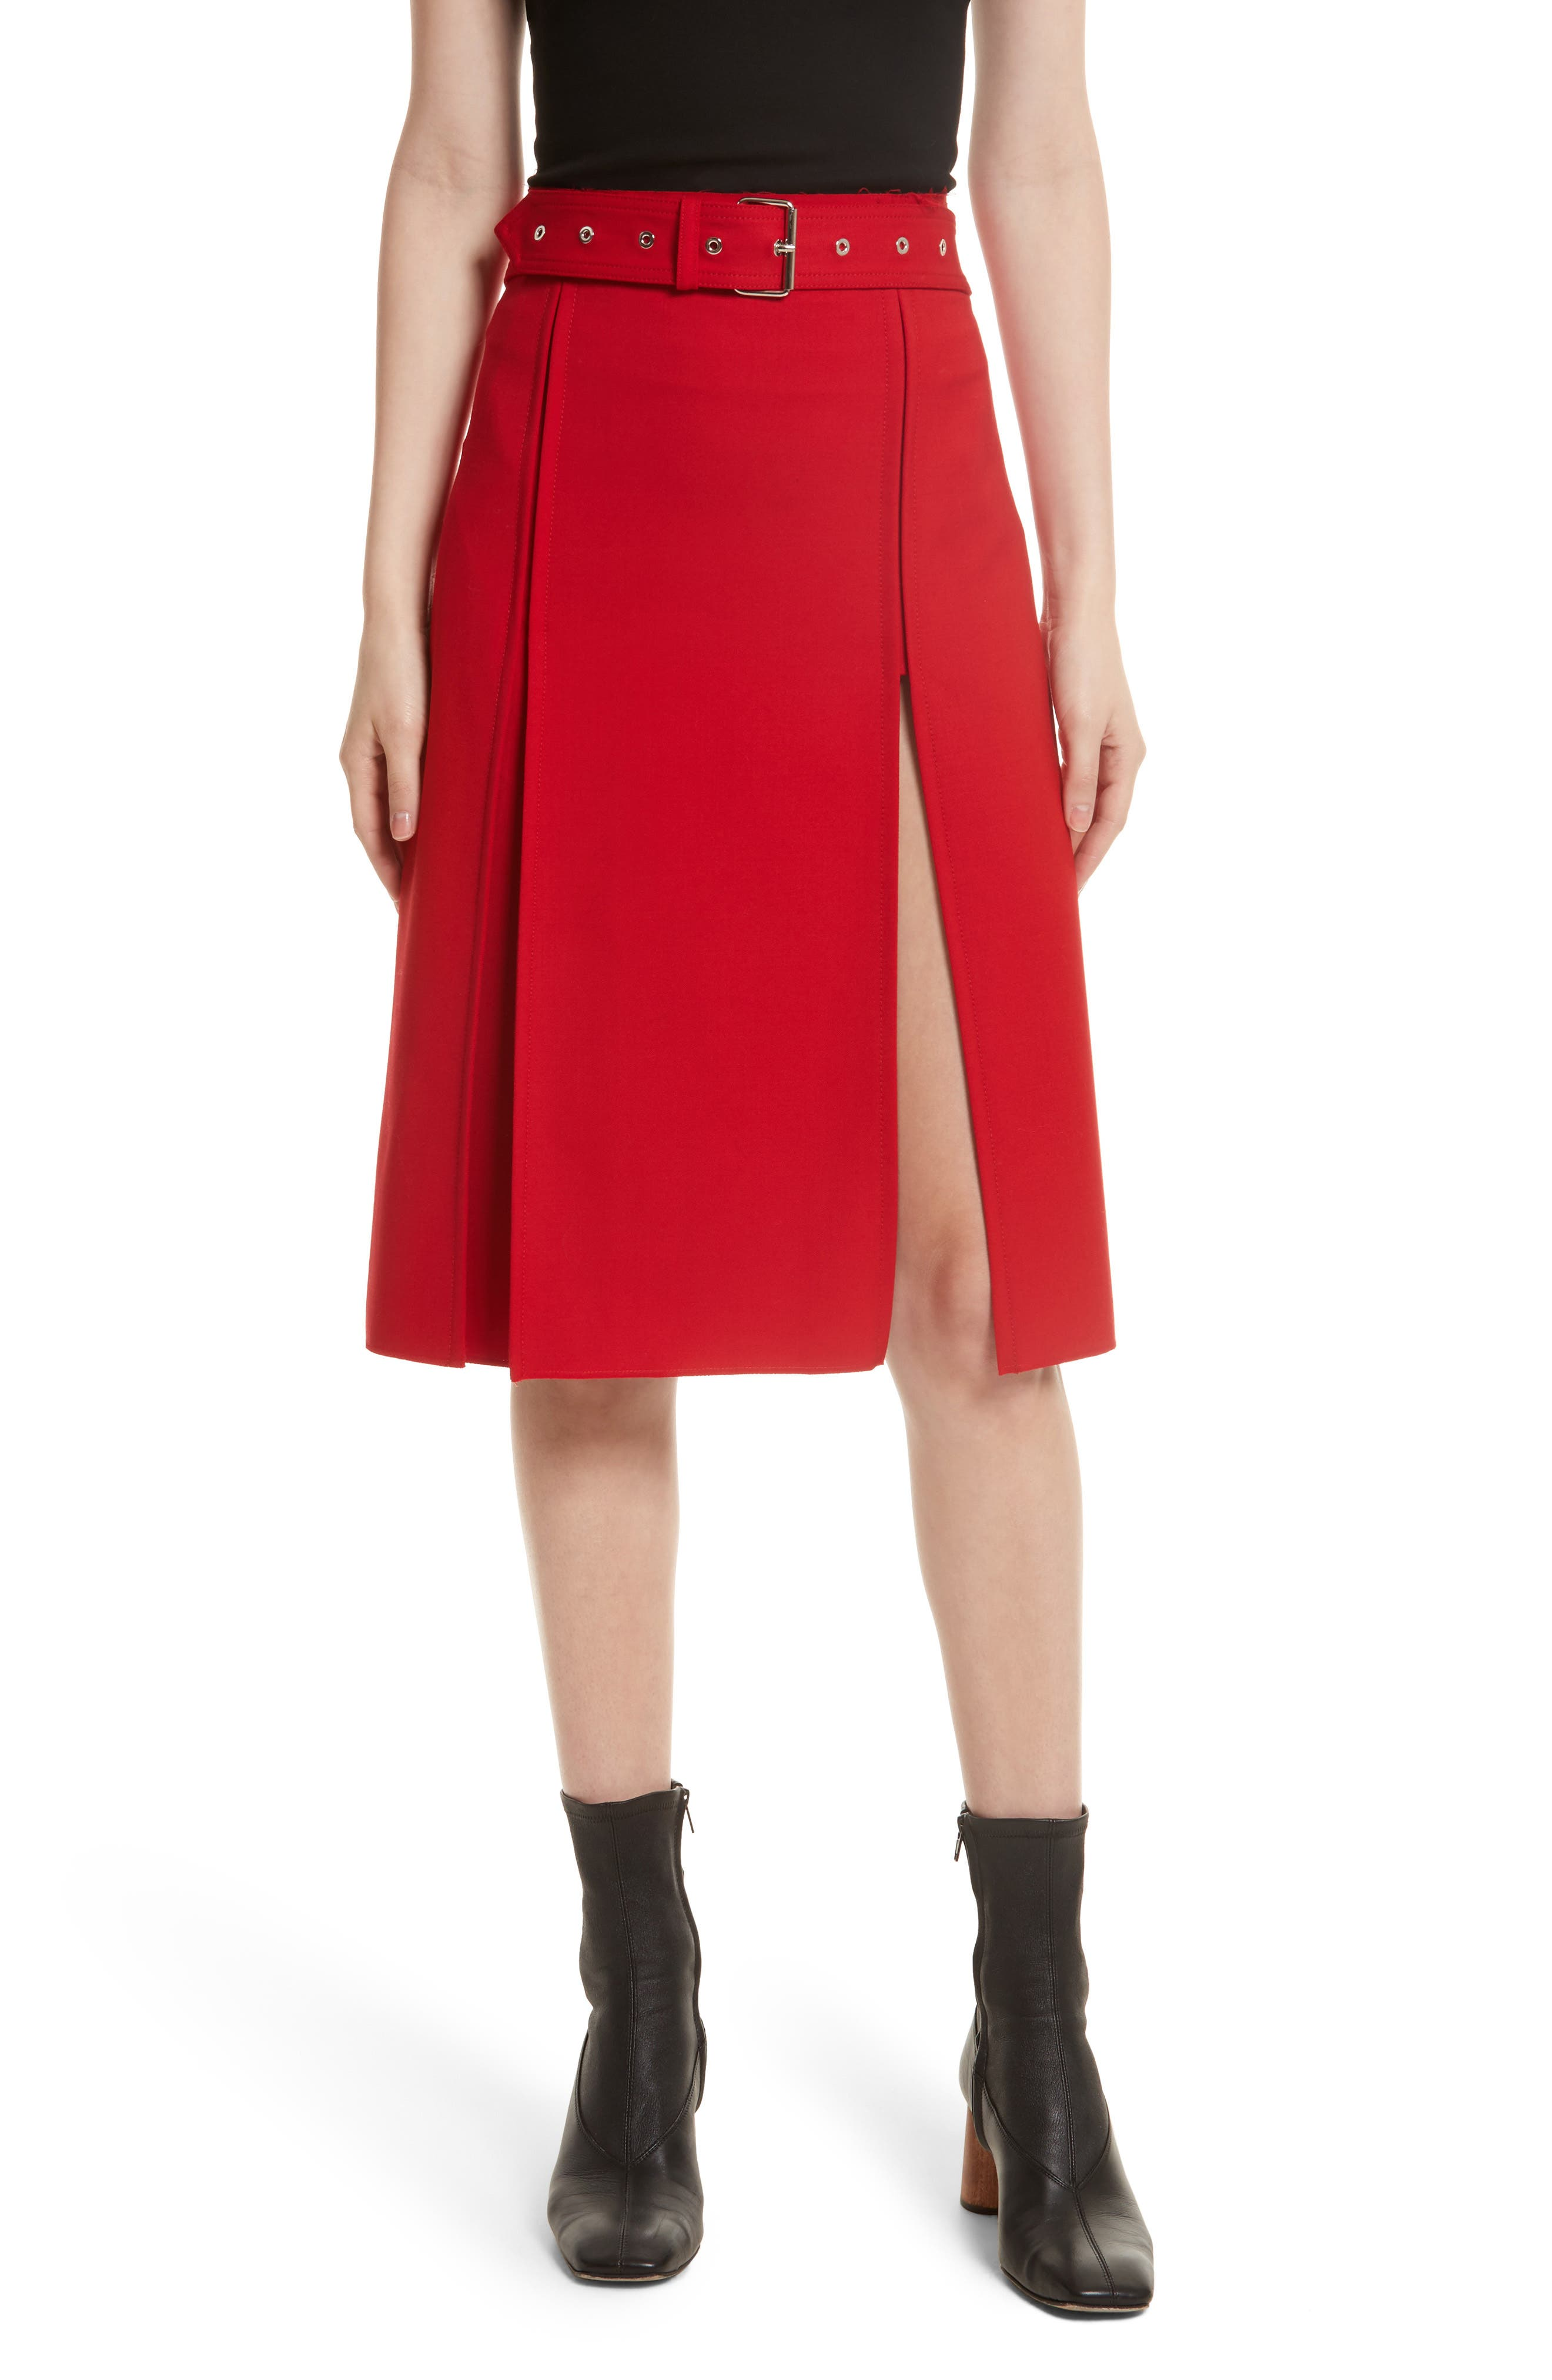 Helmut Lang Suiting Kilt Skirt